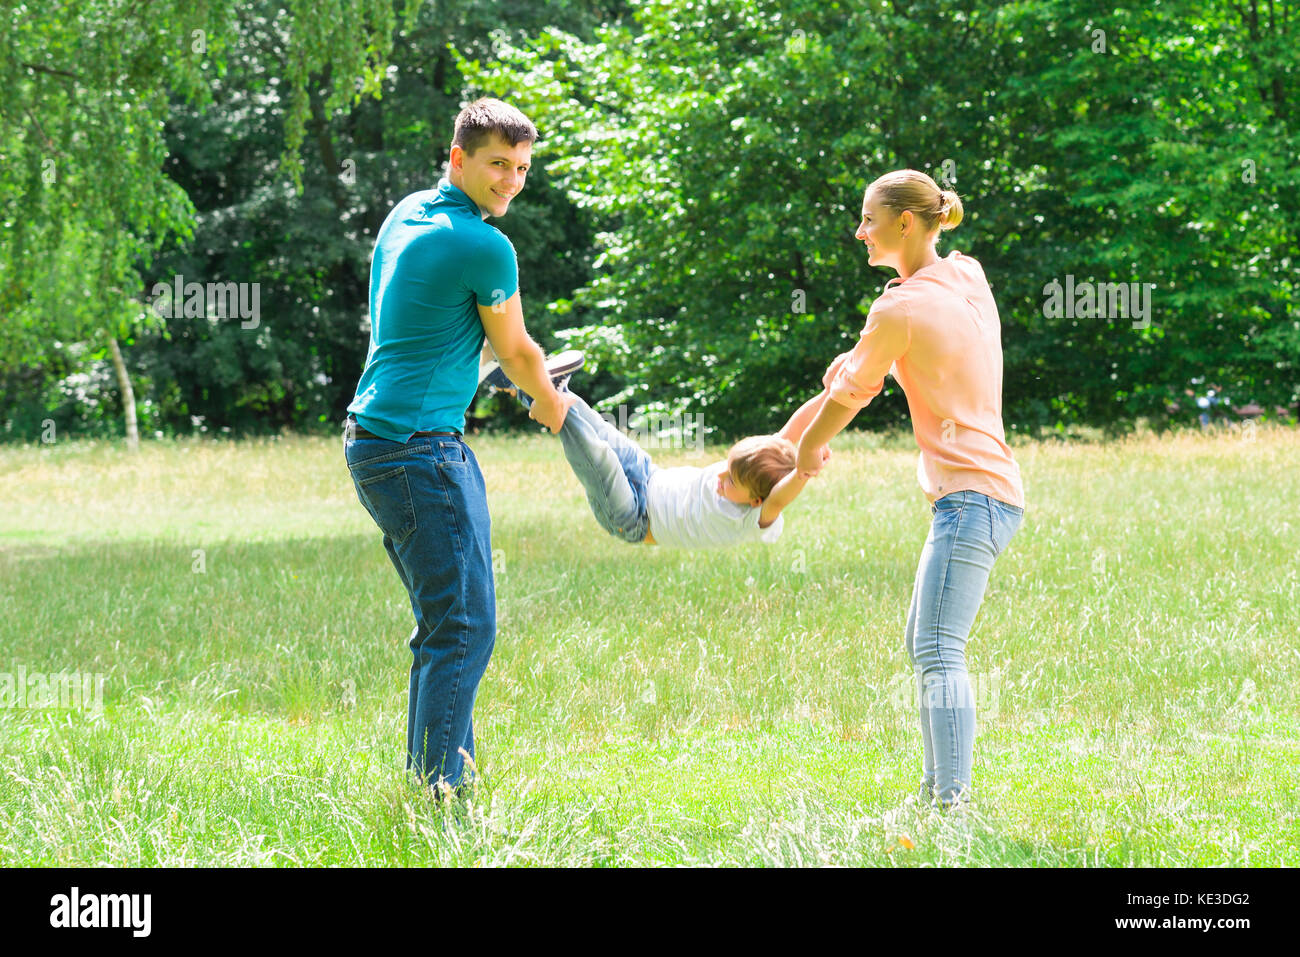 Smiling Young Parent Swinging Their Son In The Park - Stock Image